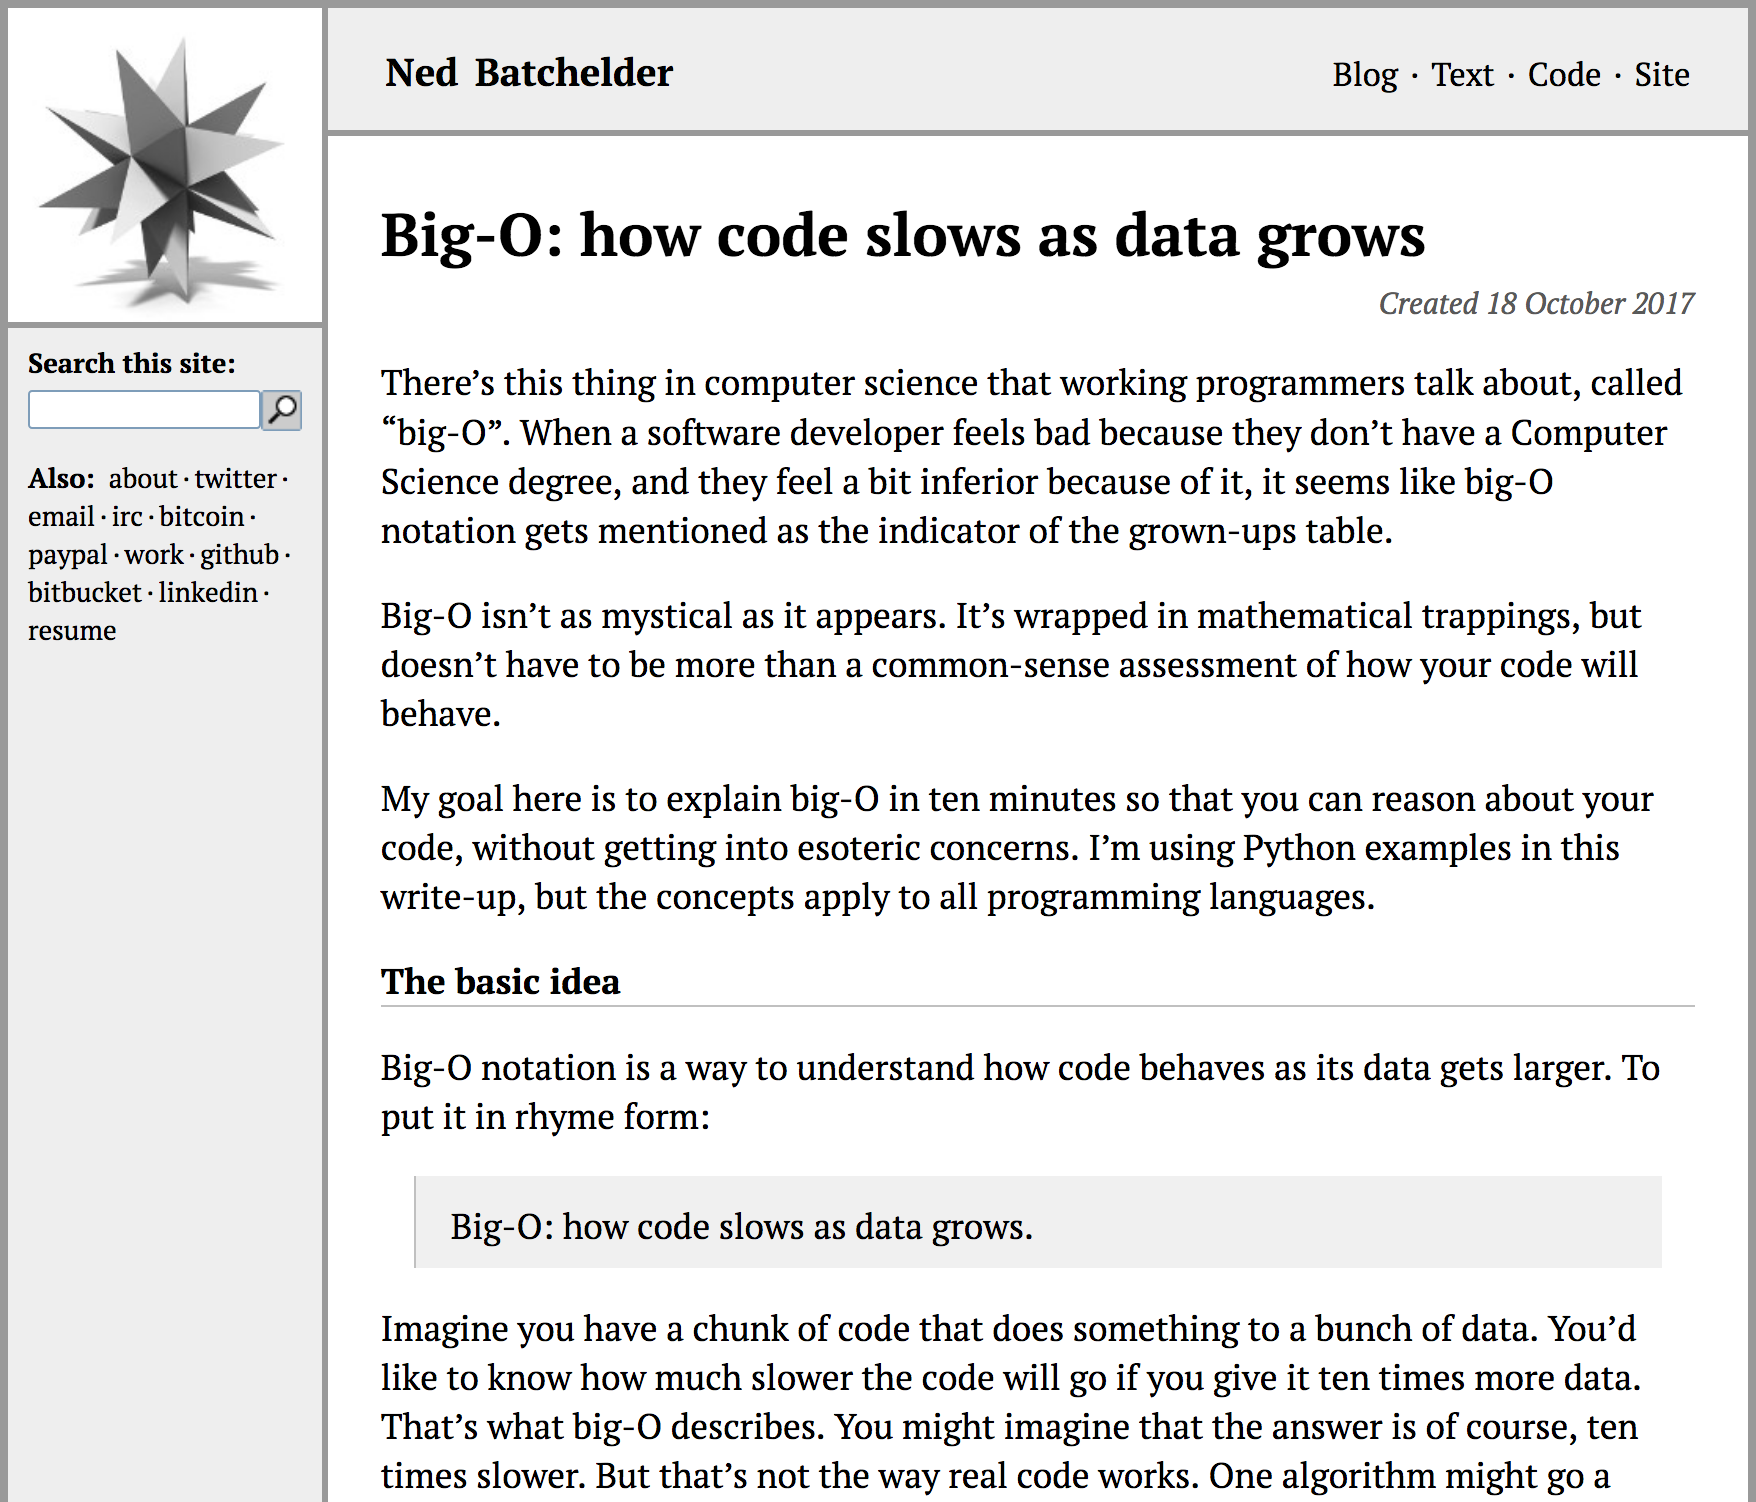 Big-O: How Code Slows as Data Grows